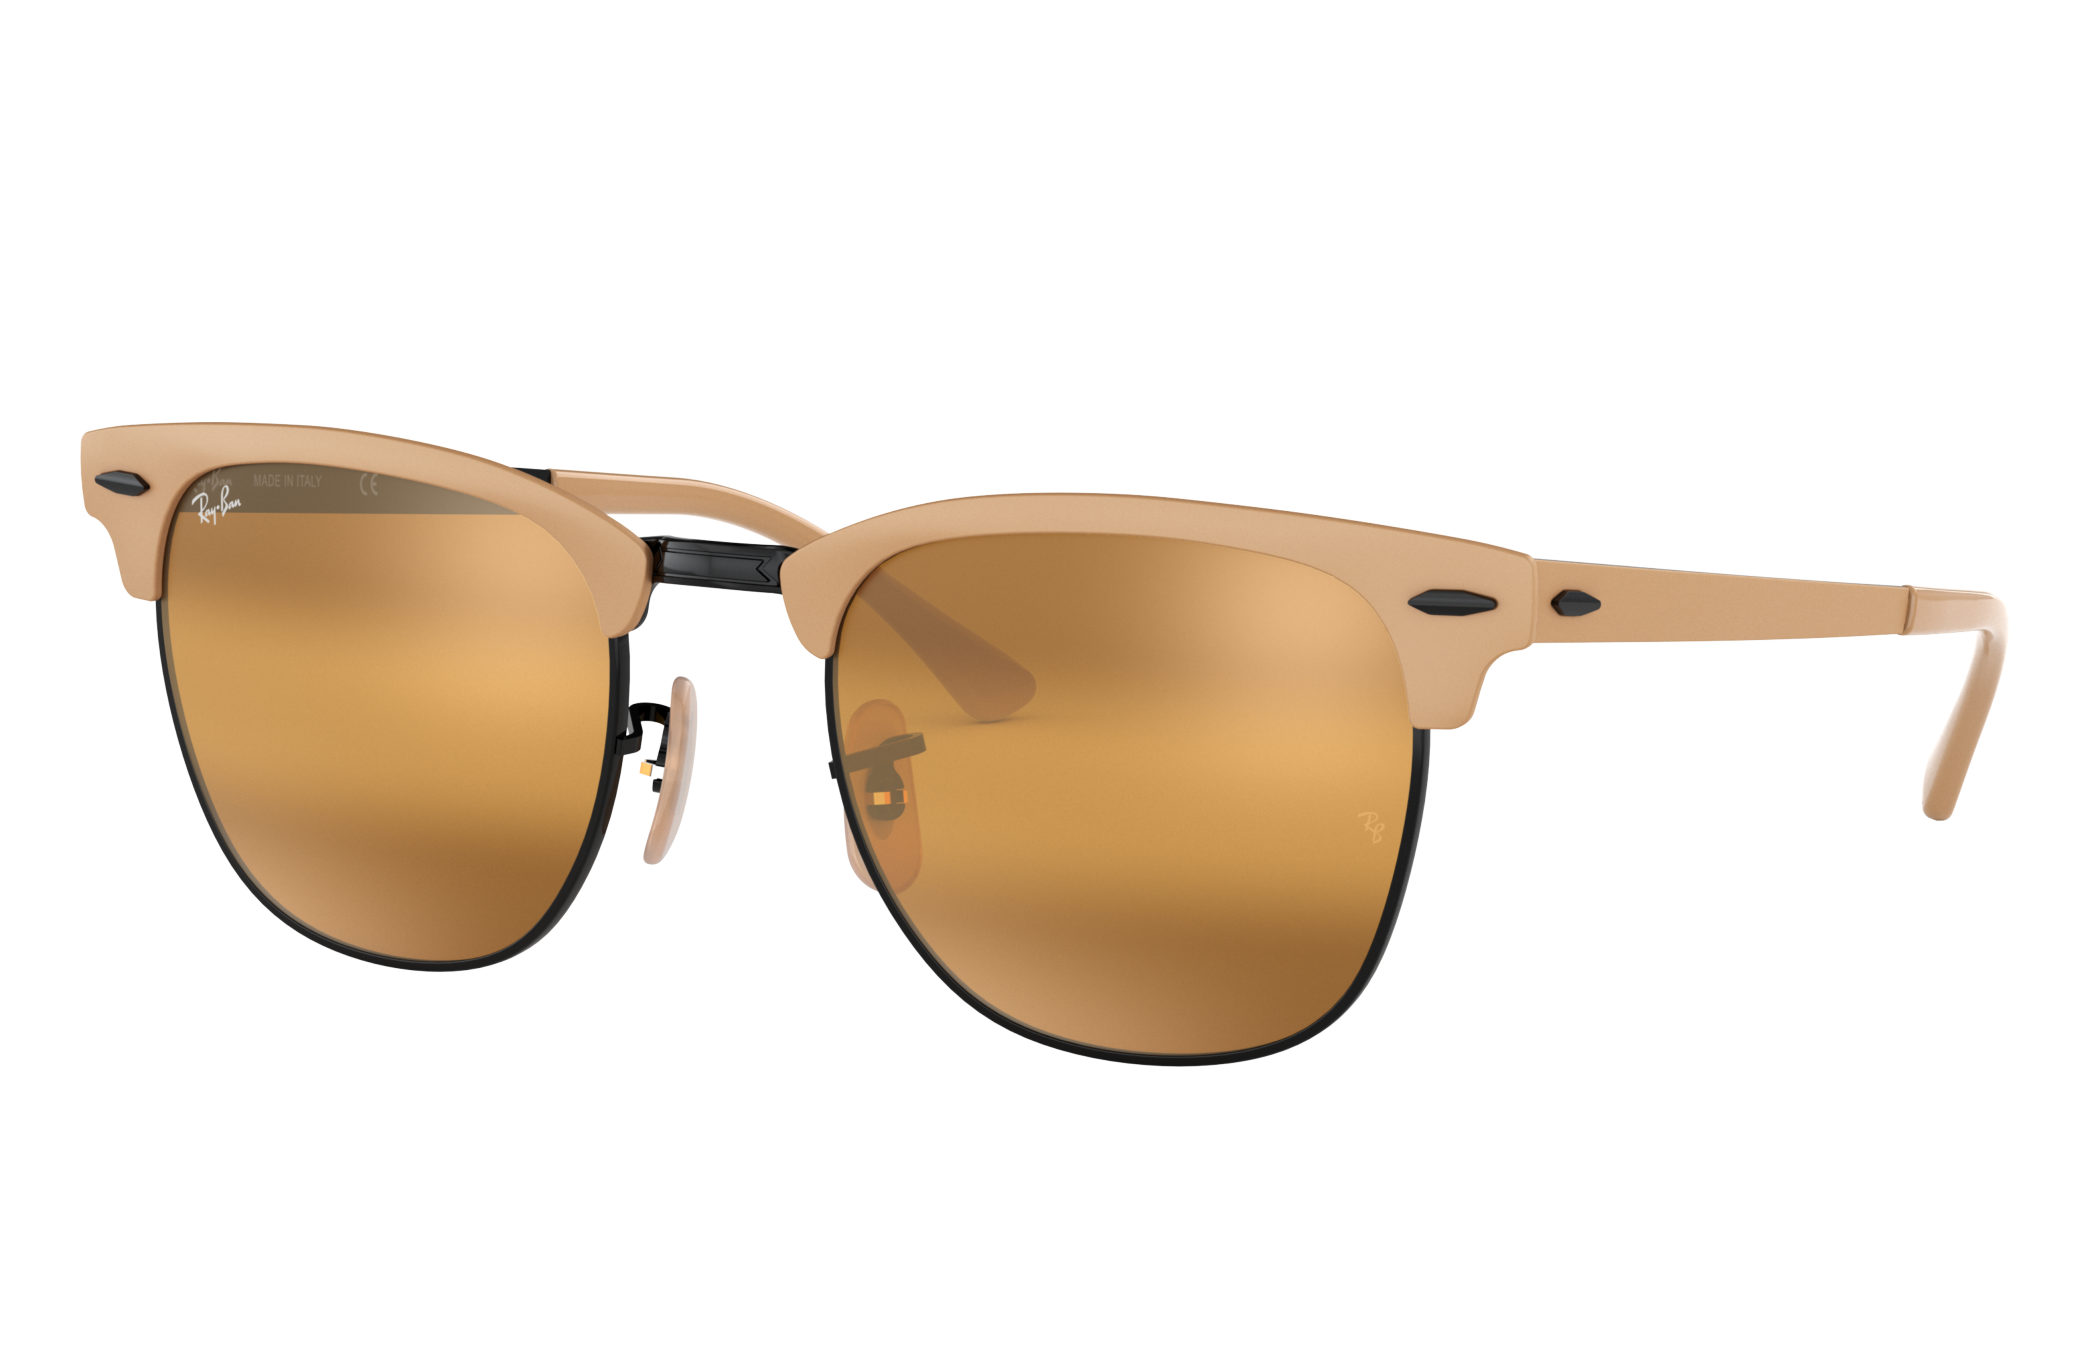 Ray-Ban Clubmaster Metal Light Brown, Yellow Lenses - RB3716